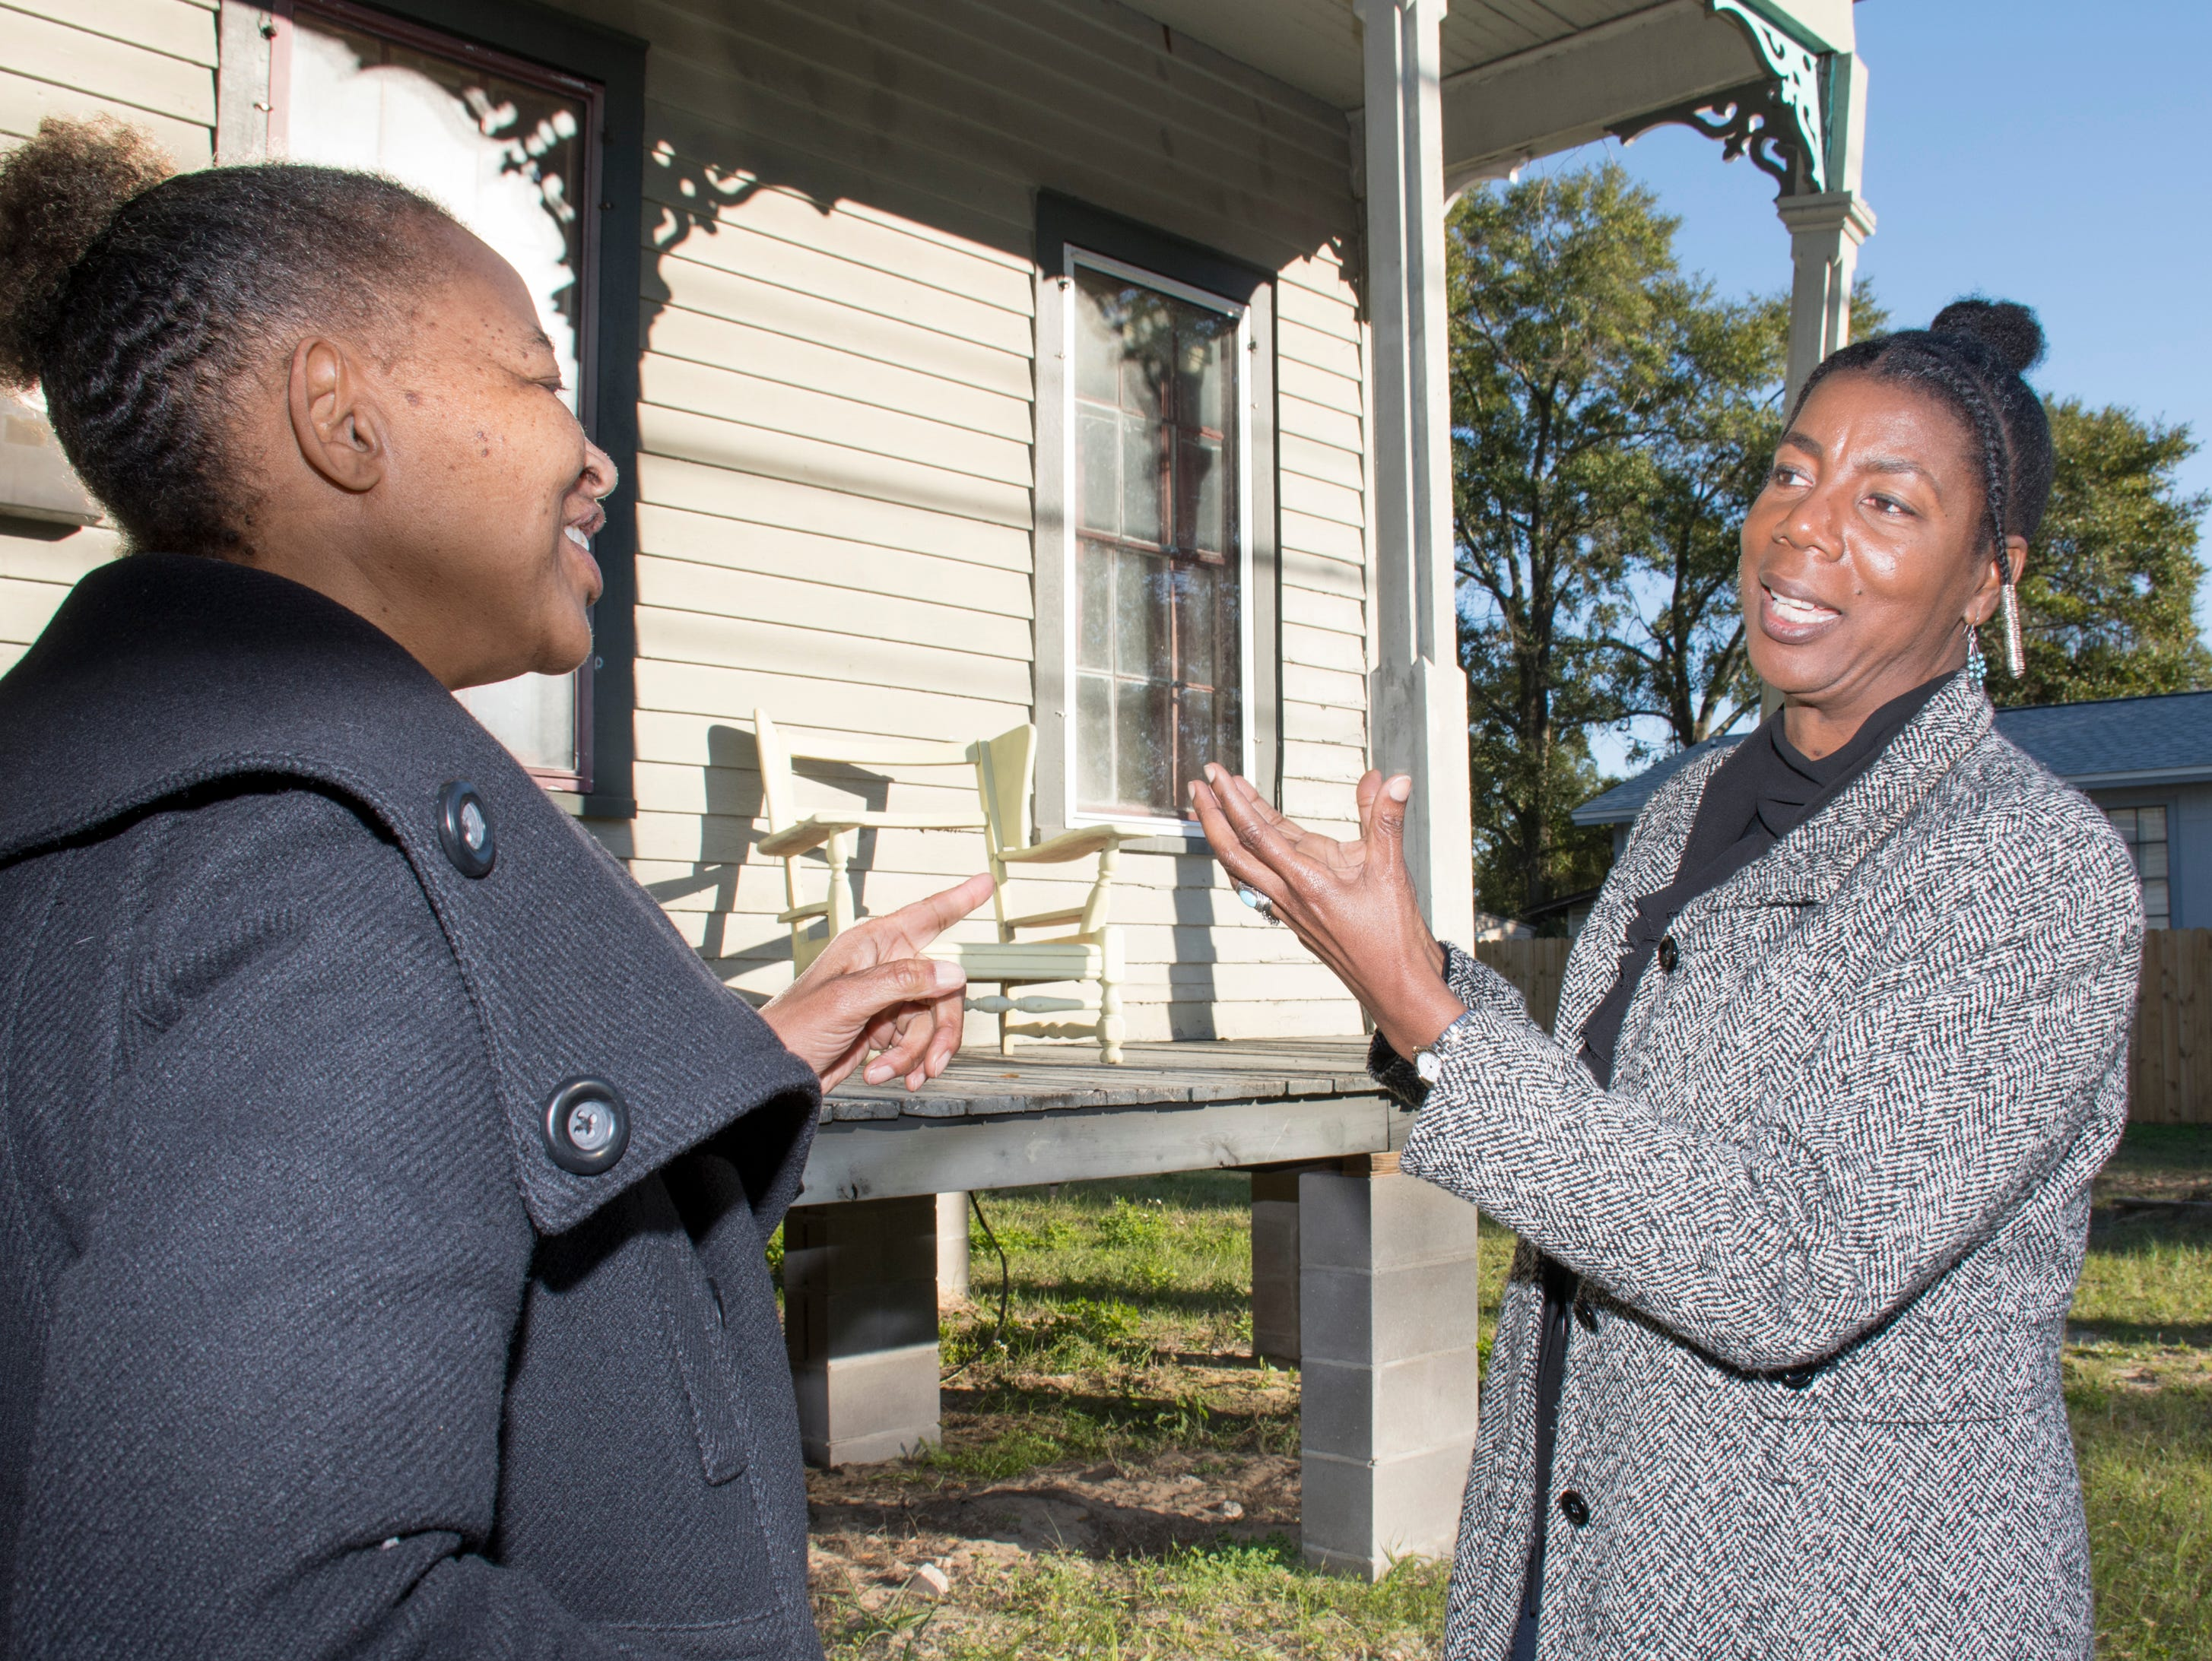 Robin Reshard, right, tells Caroll Hobbs about plans for the future home of the Ezra Gerry Museum and Research Center at 422 N. Coyle Street in the Belmont-DeVilliers neighborhood of Pensacola on Friday, January 11, 2019.